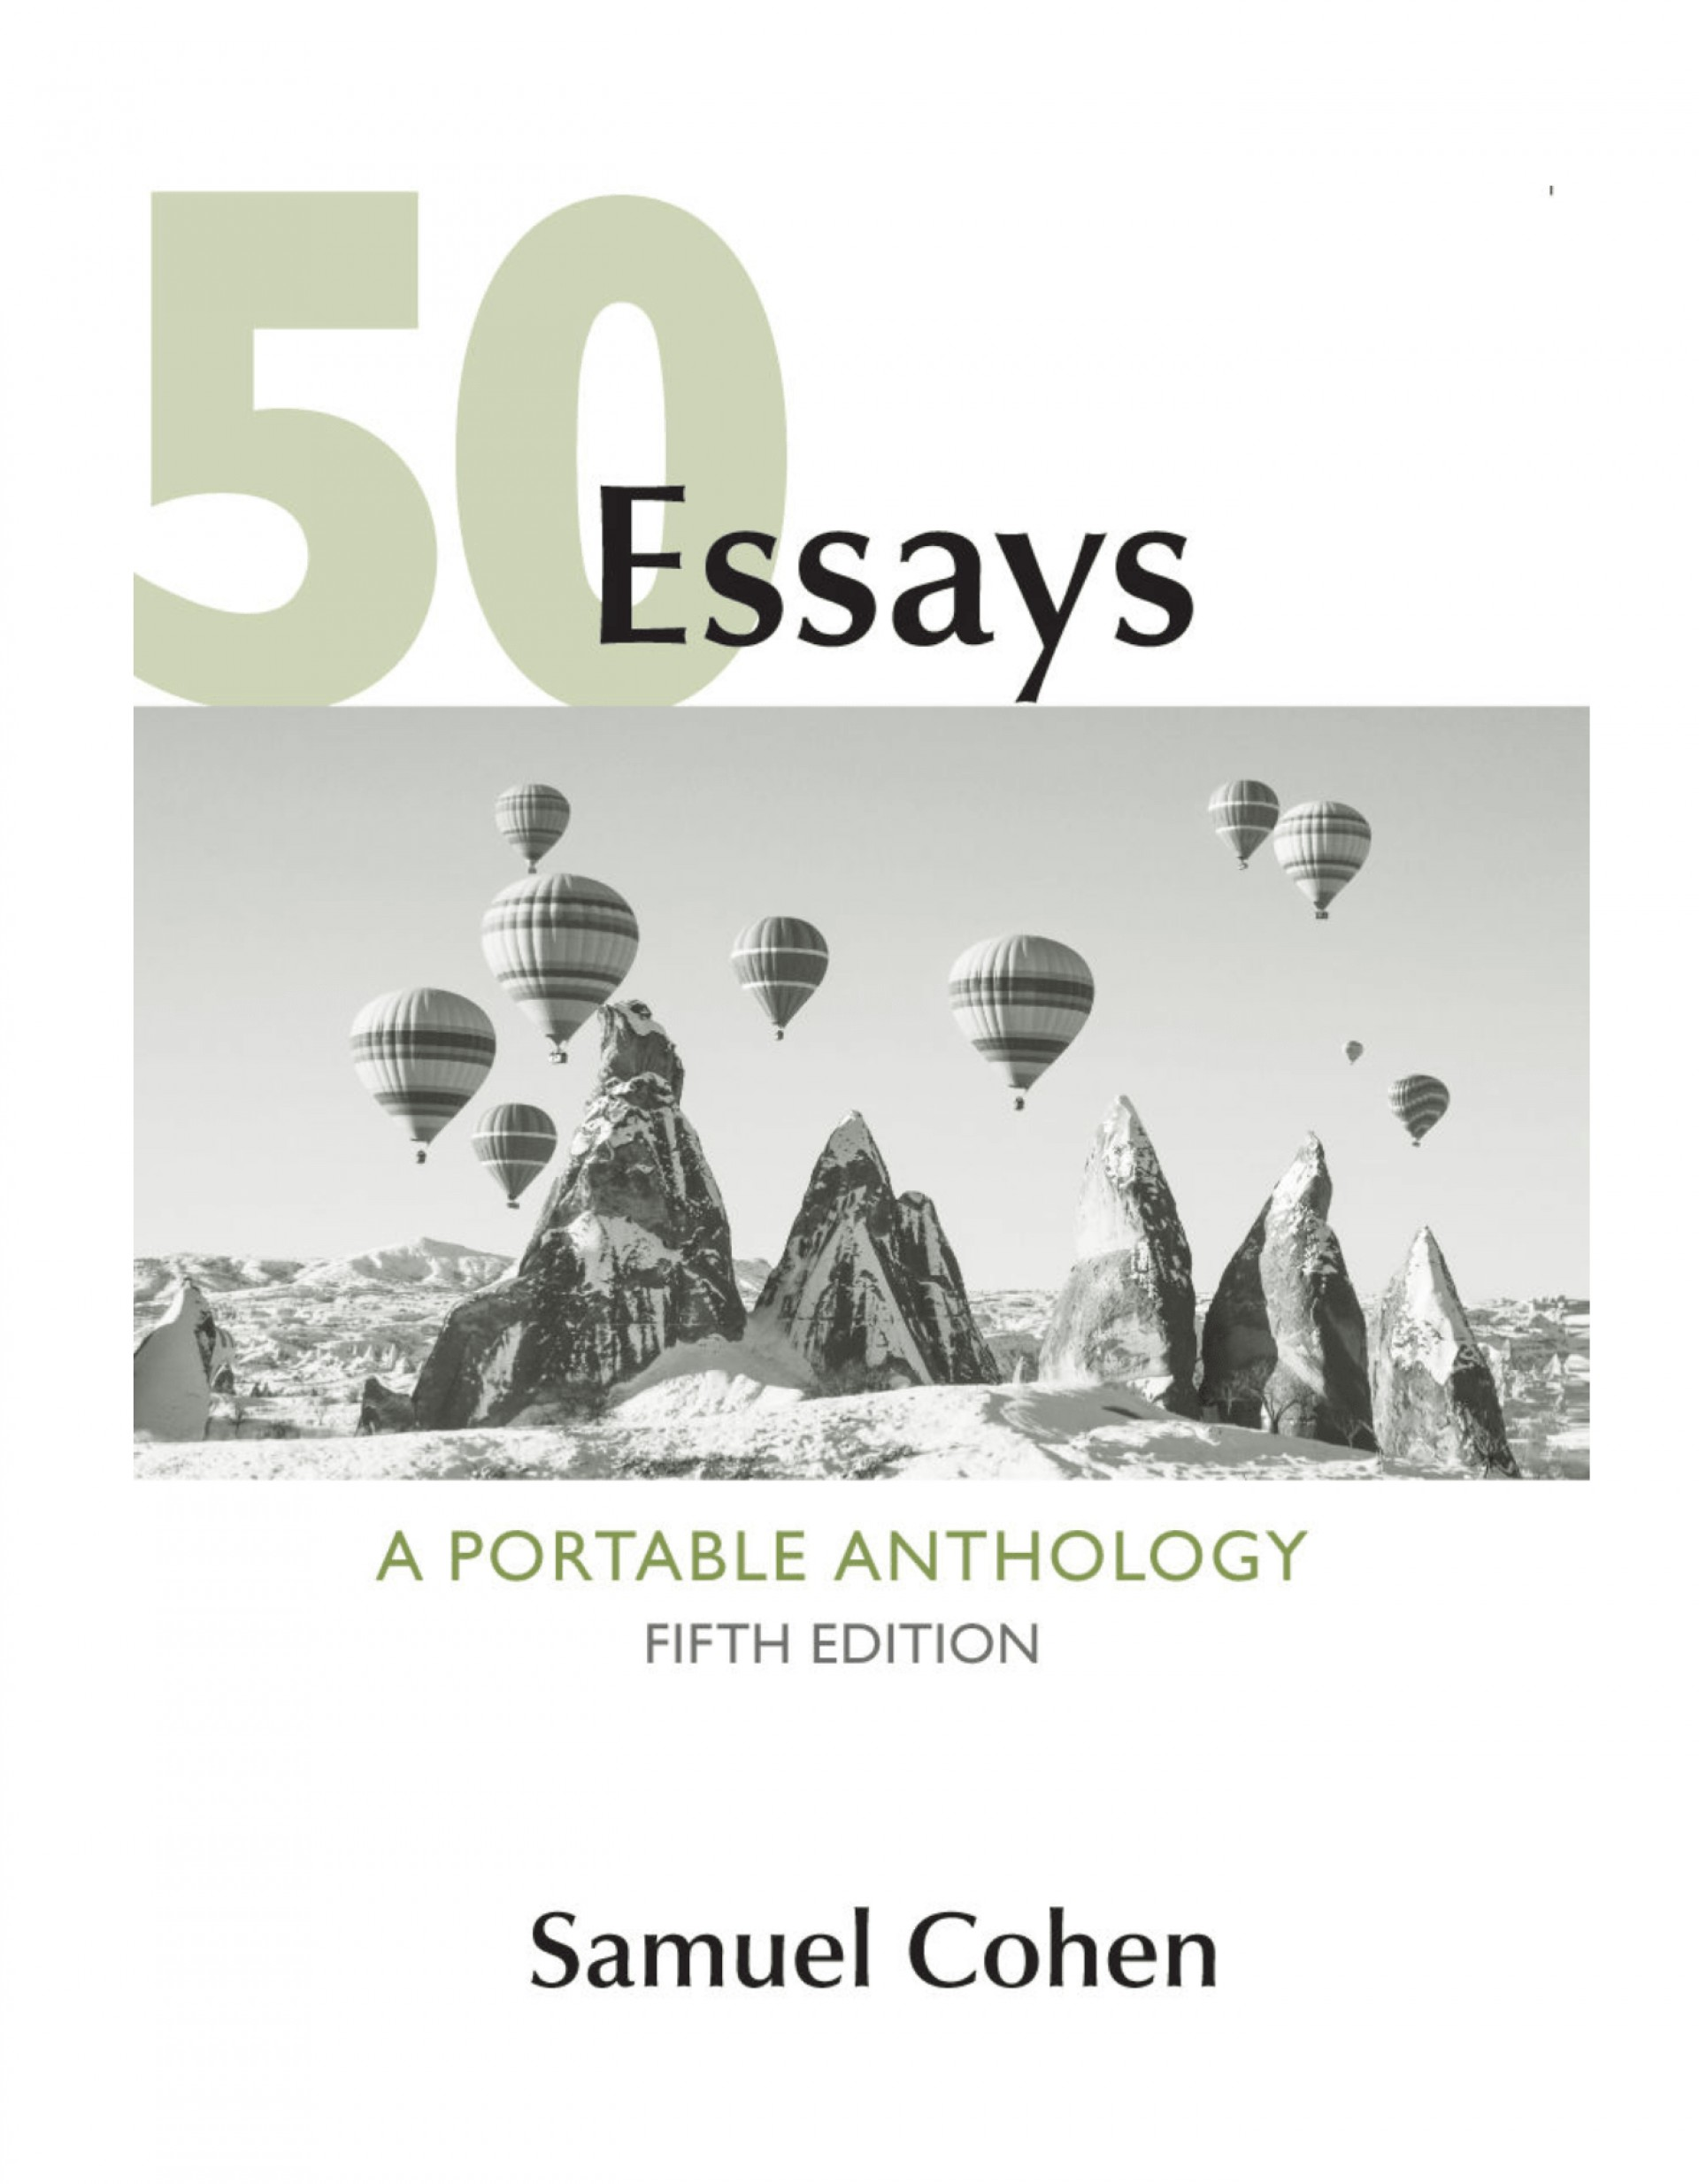 015 50fit14002c1800ssl1 Essay Example Real Essays With Readings 5th Wonderful Edition Answer Key Online Ebook 1920